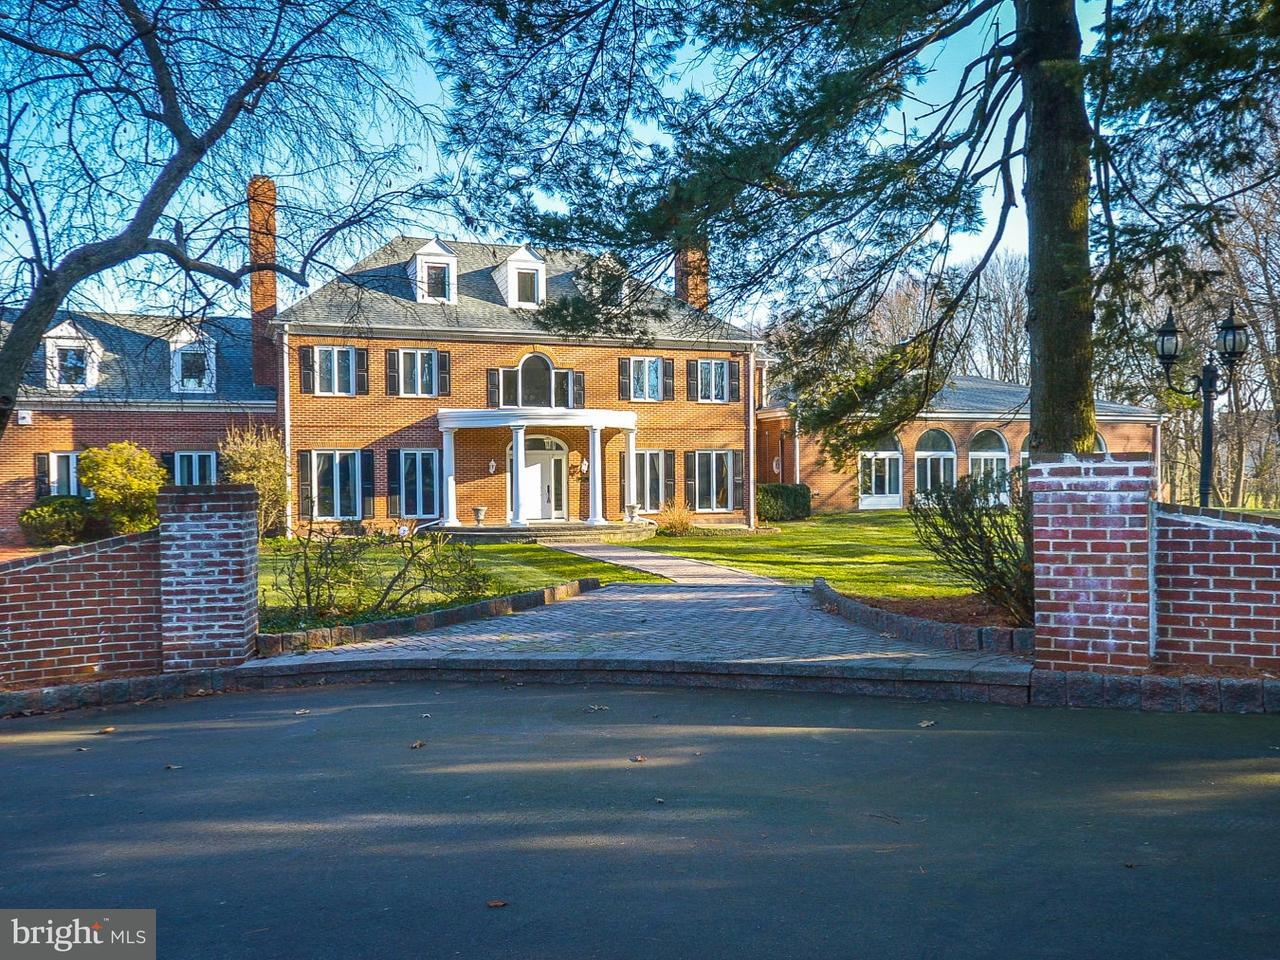 Single Family Home for Sale at 460 ROELOFFS Road Yardley, Pennsylvania 19067 United States